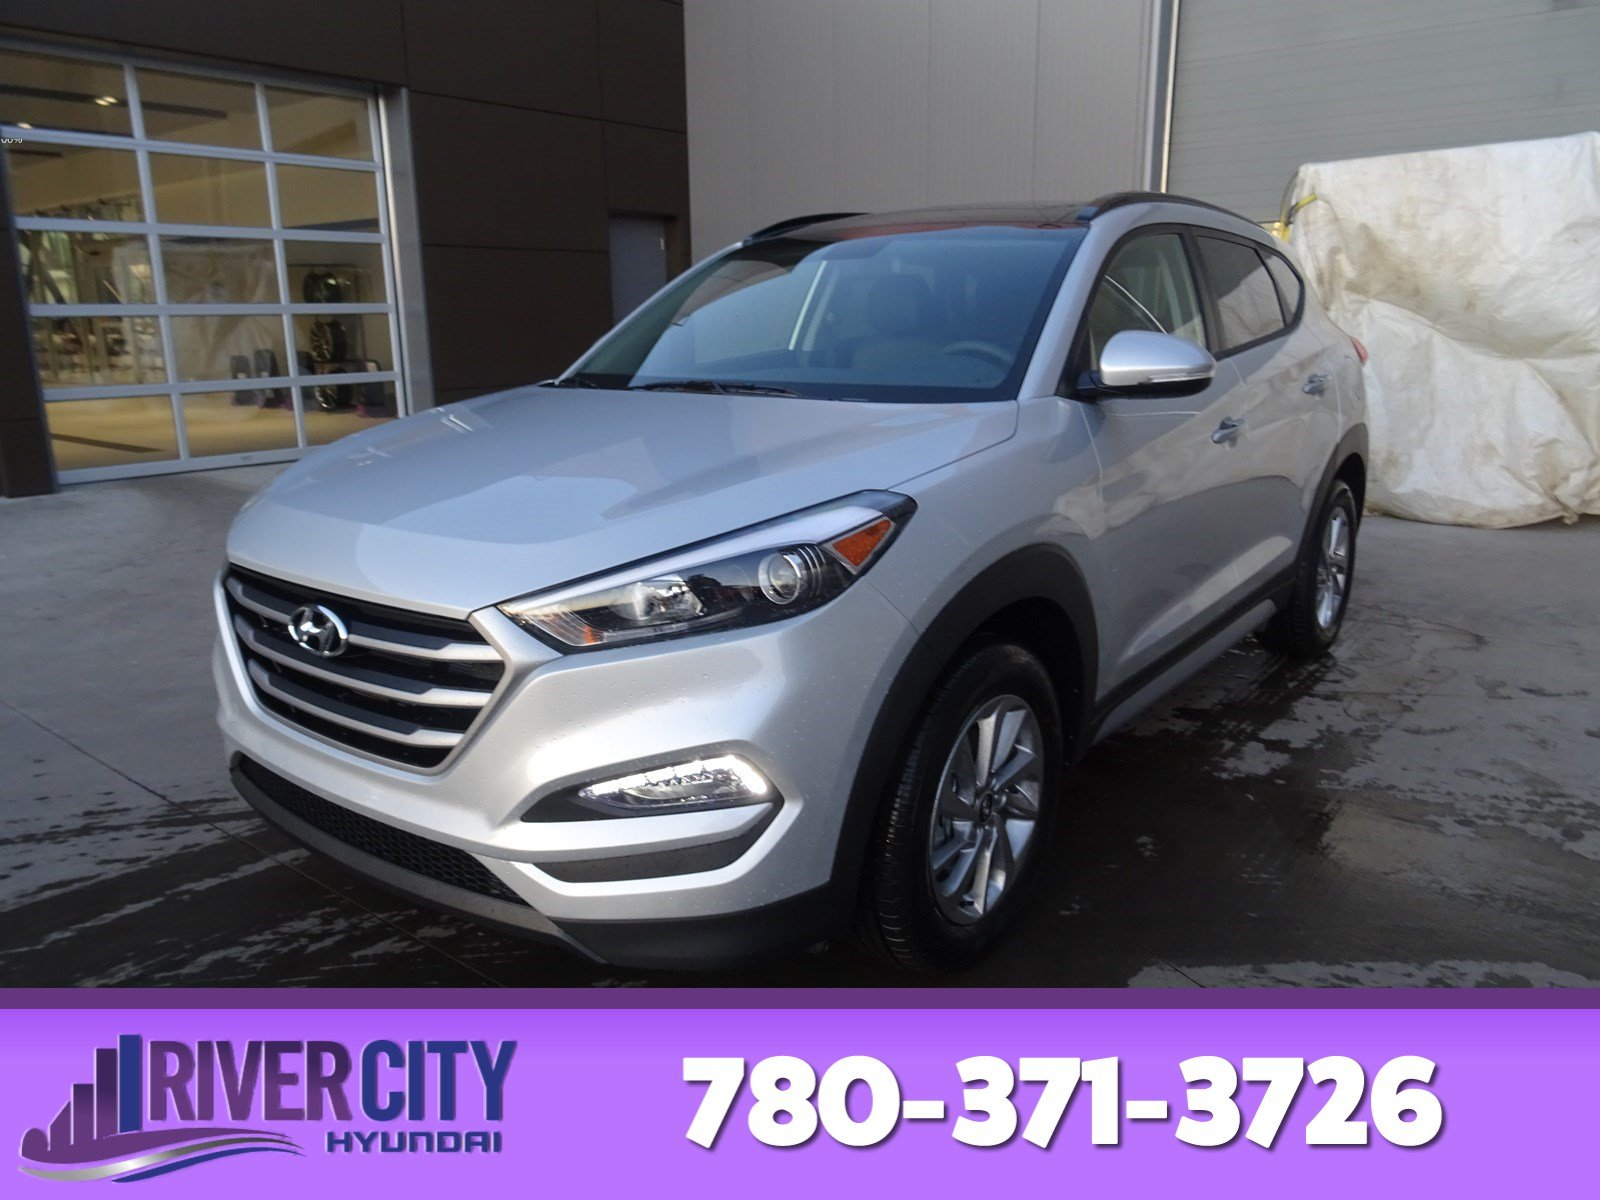 tucson car hyundai reviews tuscan mud whichcar highlander drive prices and live review updates